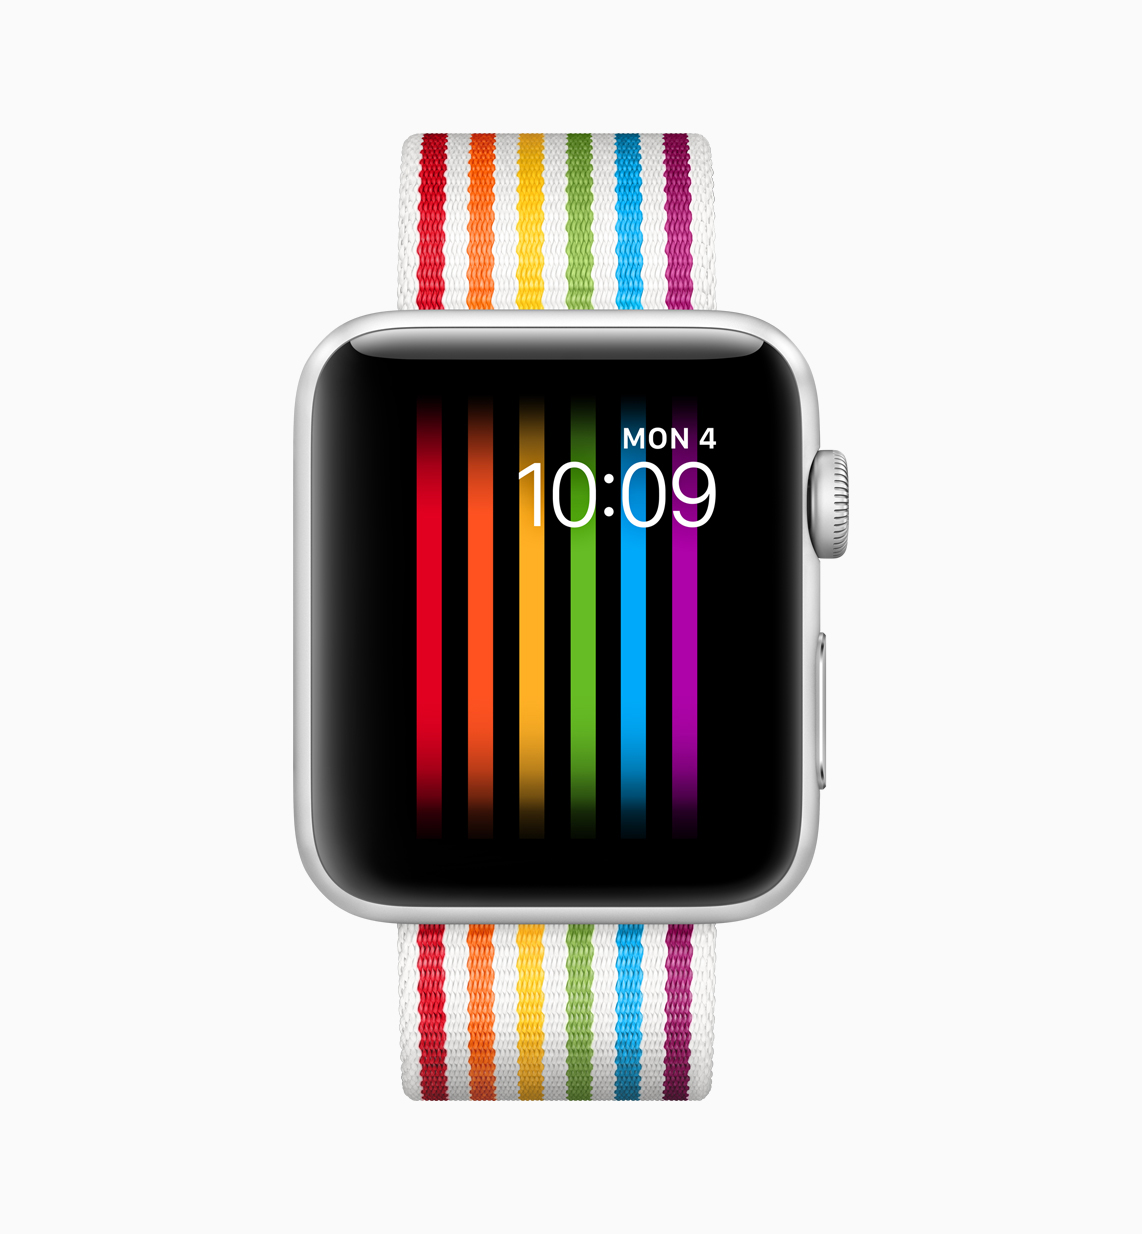 Apple-watchOS_5-Pride-Face-screen-06042018.jpg